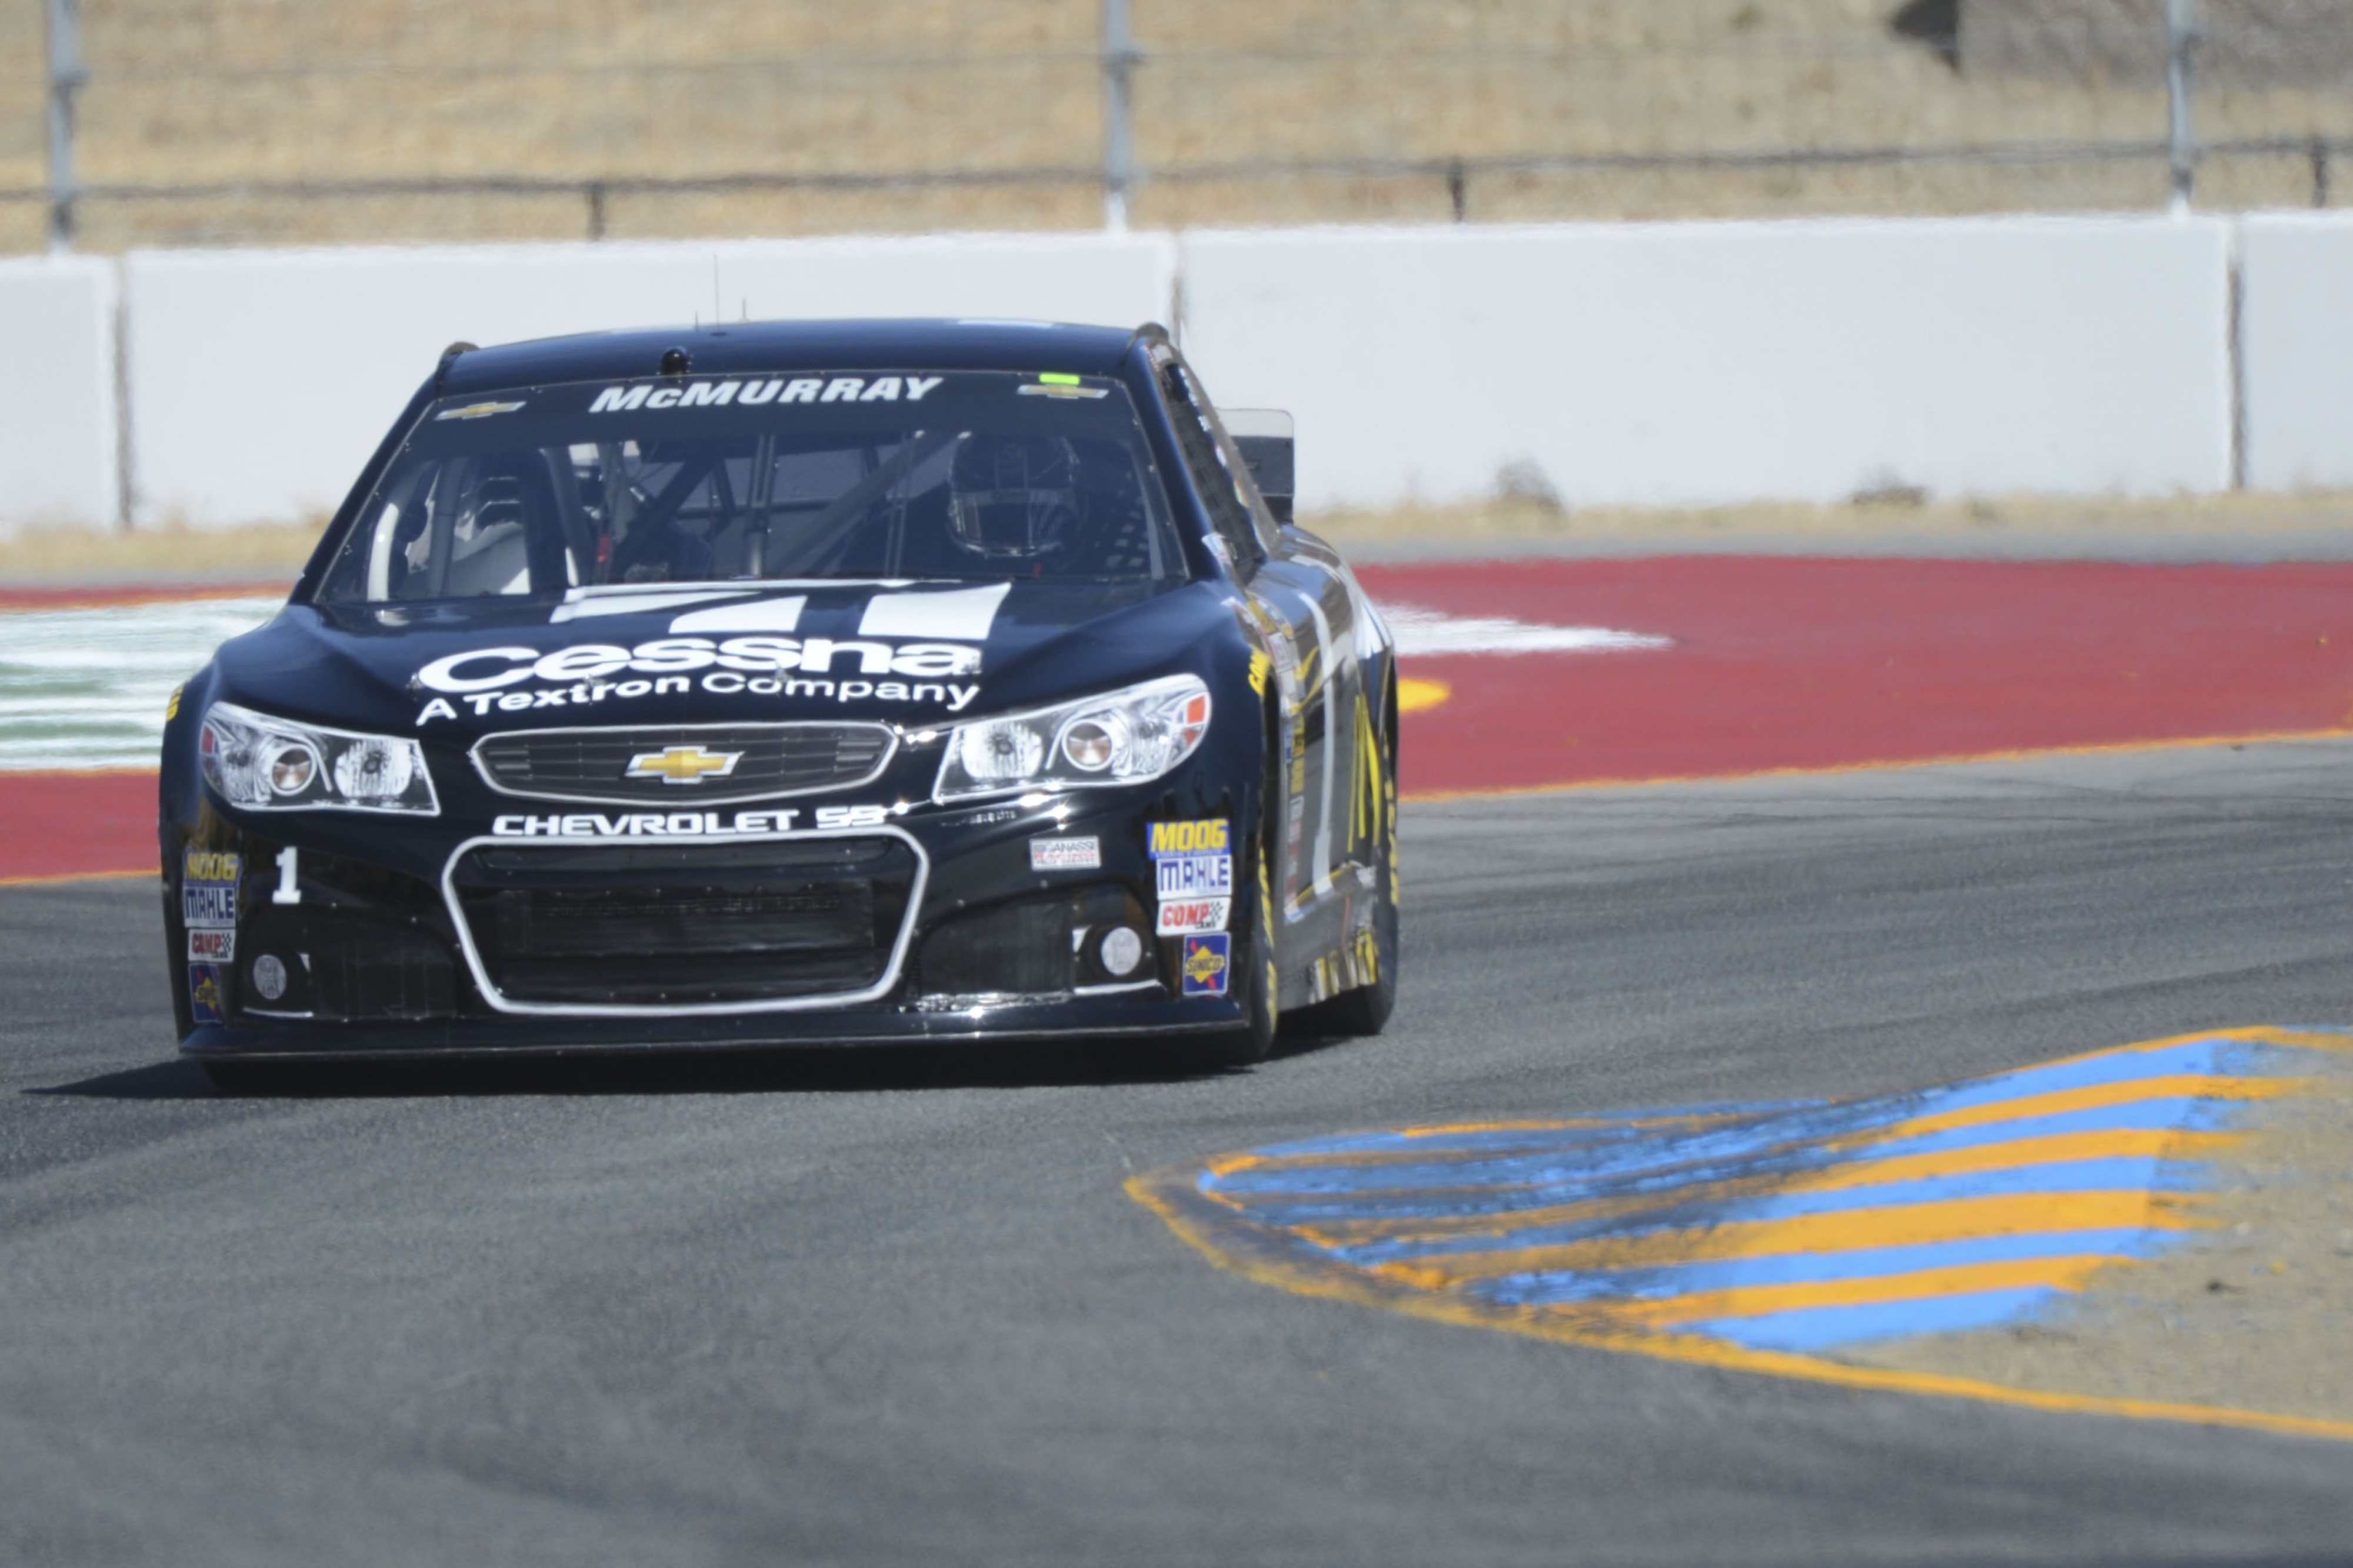 NASCAR Sonoma 2014: Start time, TV schedule for Toyota/Save Mart 350